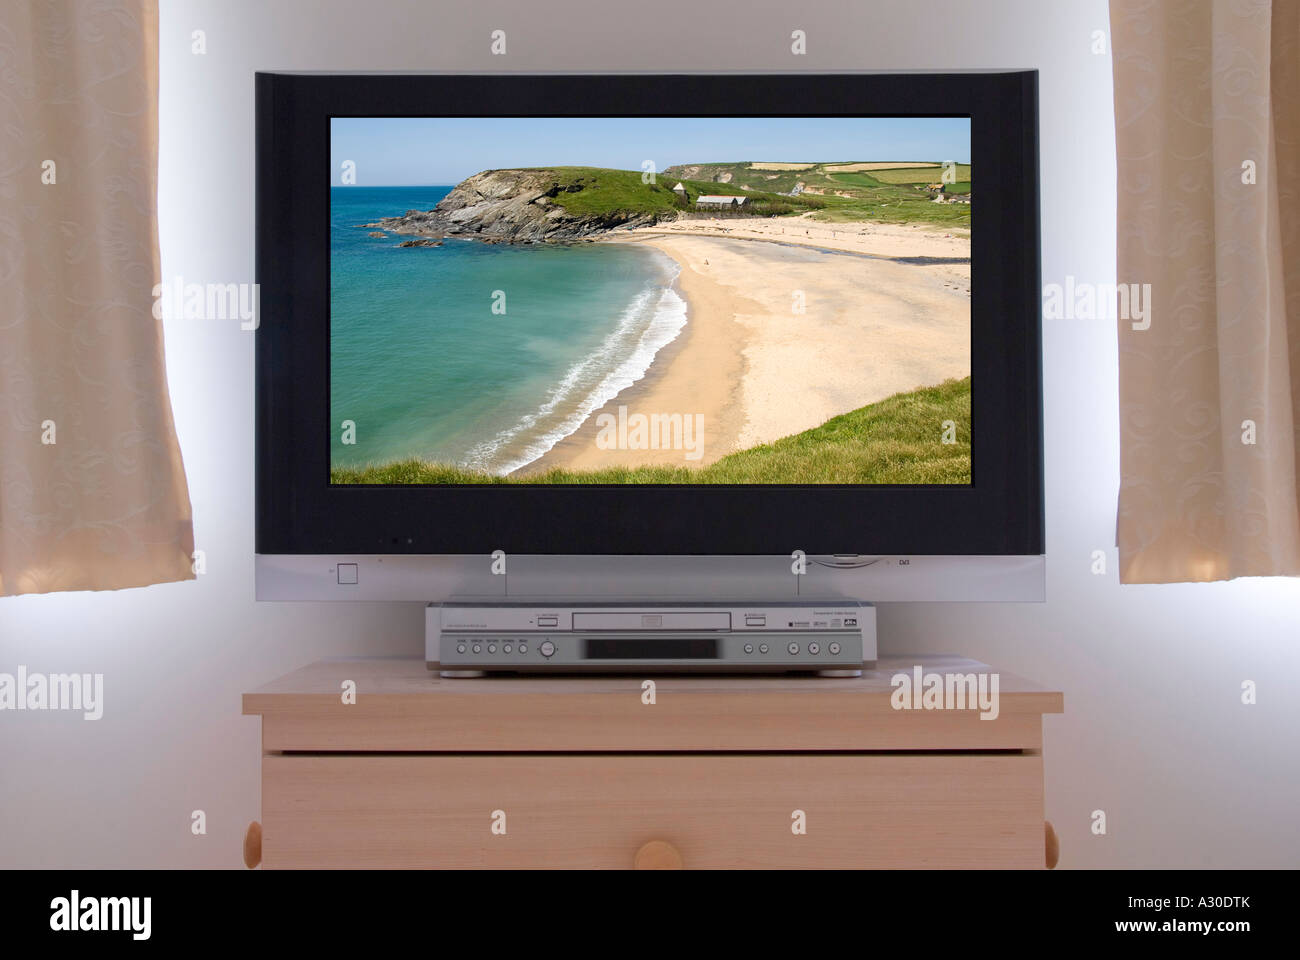 flat panel lcd television monitor fixed to bedroom wall showing